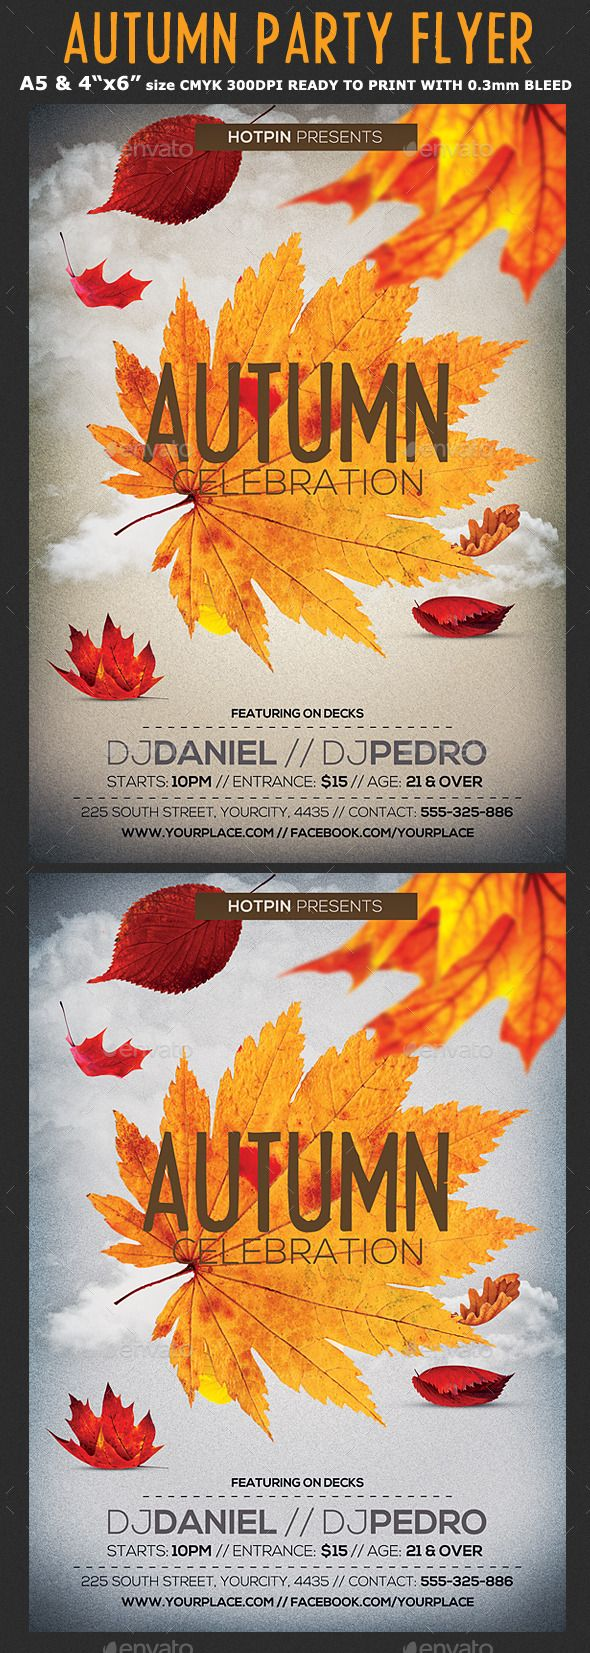 Autumn/Fall Party Flyer Template | Party flyer, Flyer template and ...